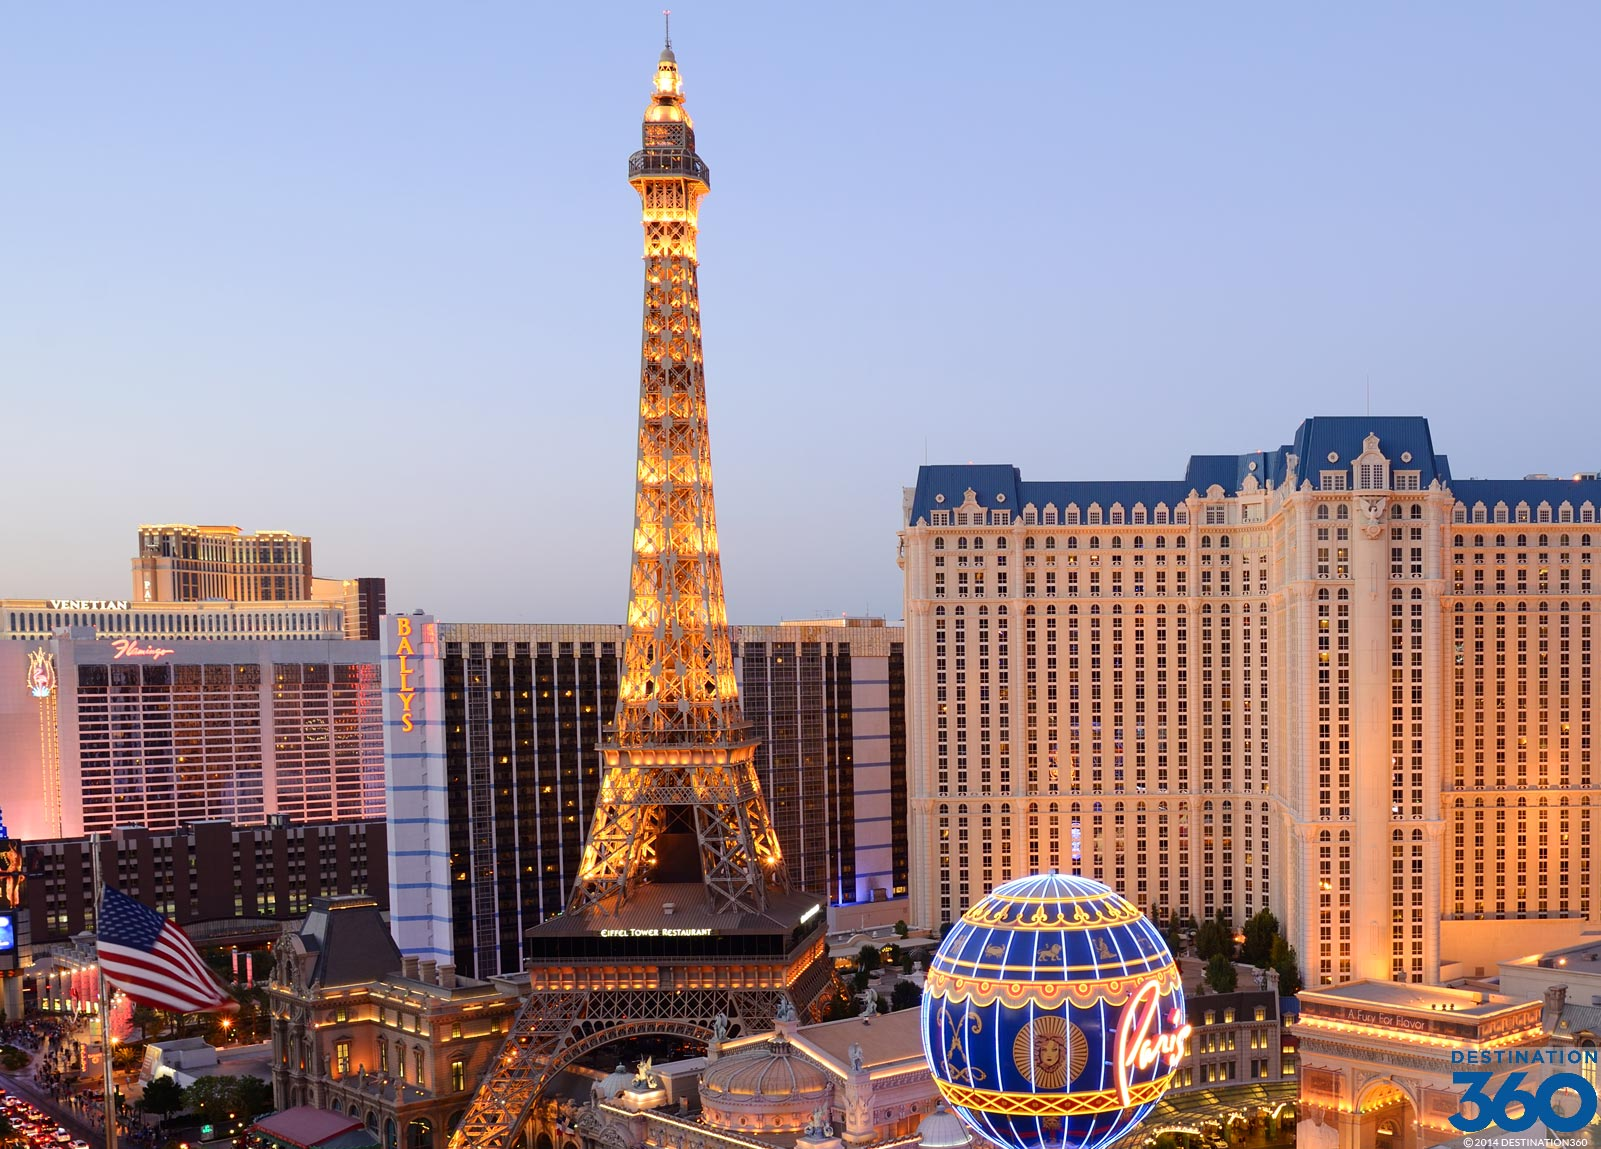 Eiffel Tower Las Vegas Paris Las Vegas Vegas Eiffel Tower Facts